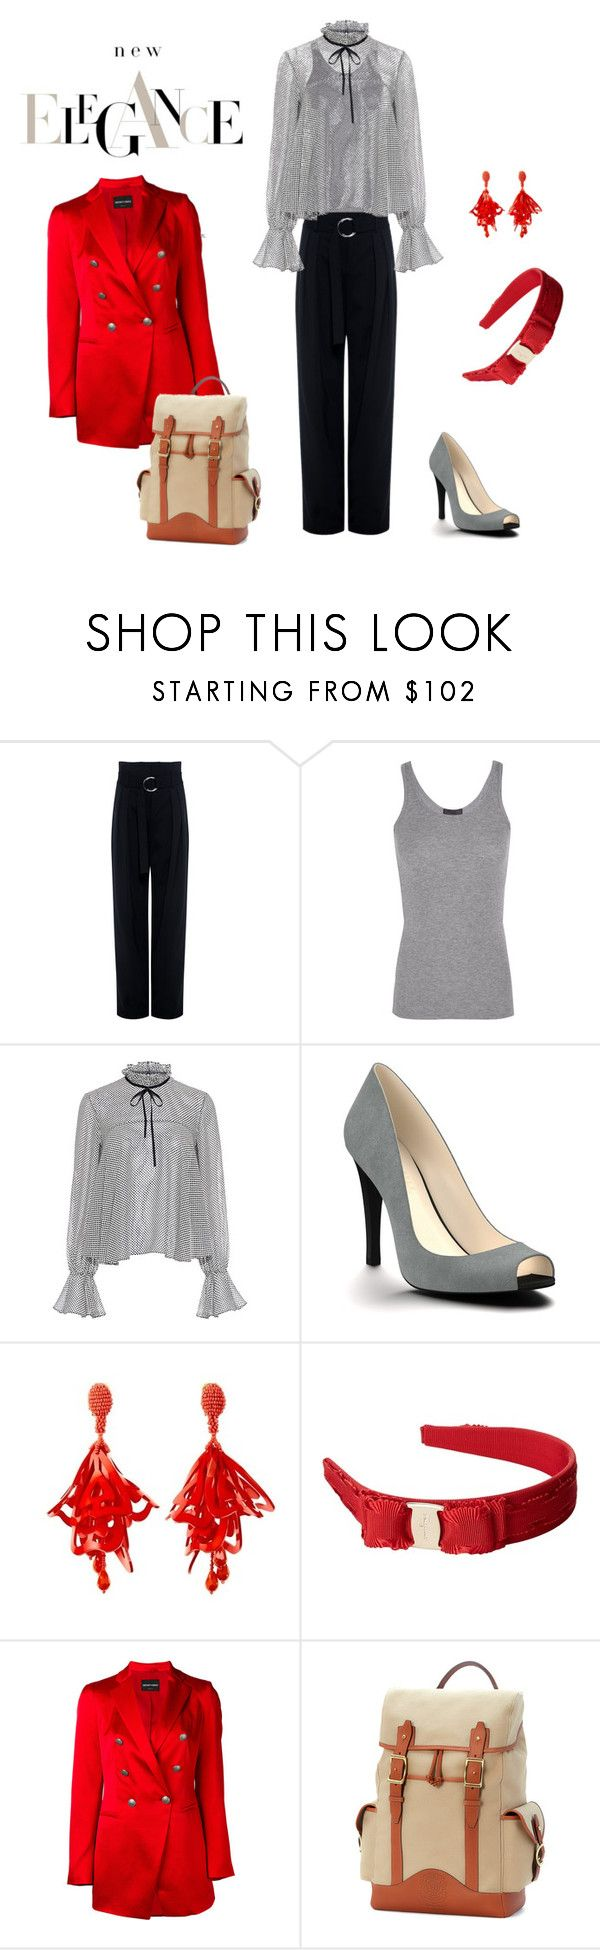 """Untitled #3"" by m-hassay ❤ liked on Polyvore featuring IRO, ATM by Anthony Thomas Melillo, Saloni, Shoes of Prey, Oscar de la Renta, Salvatore Ferragamo, Emporio Armani and Ghurka"